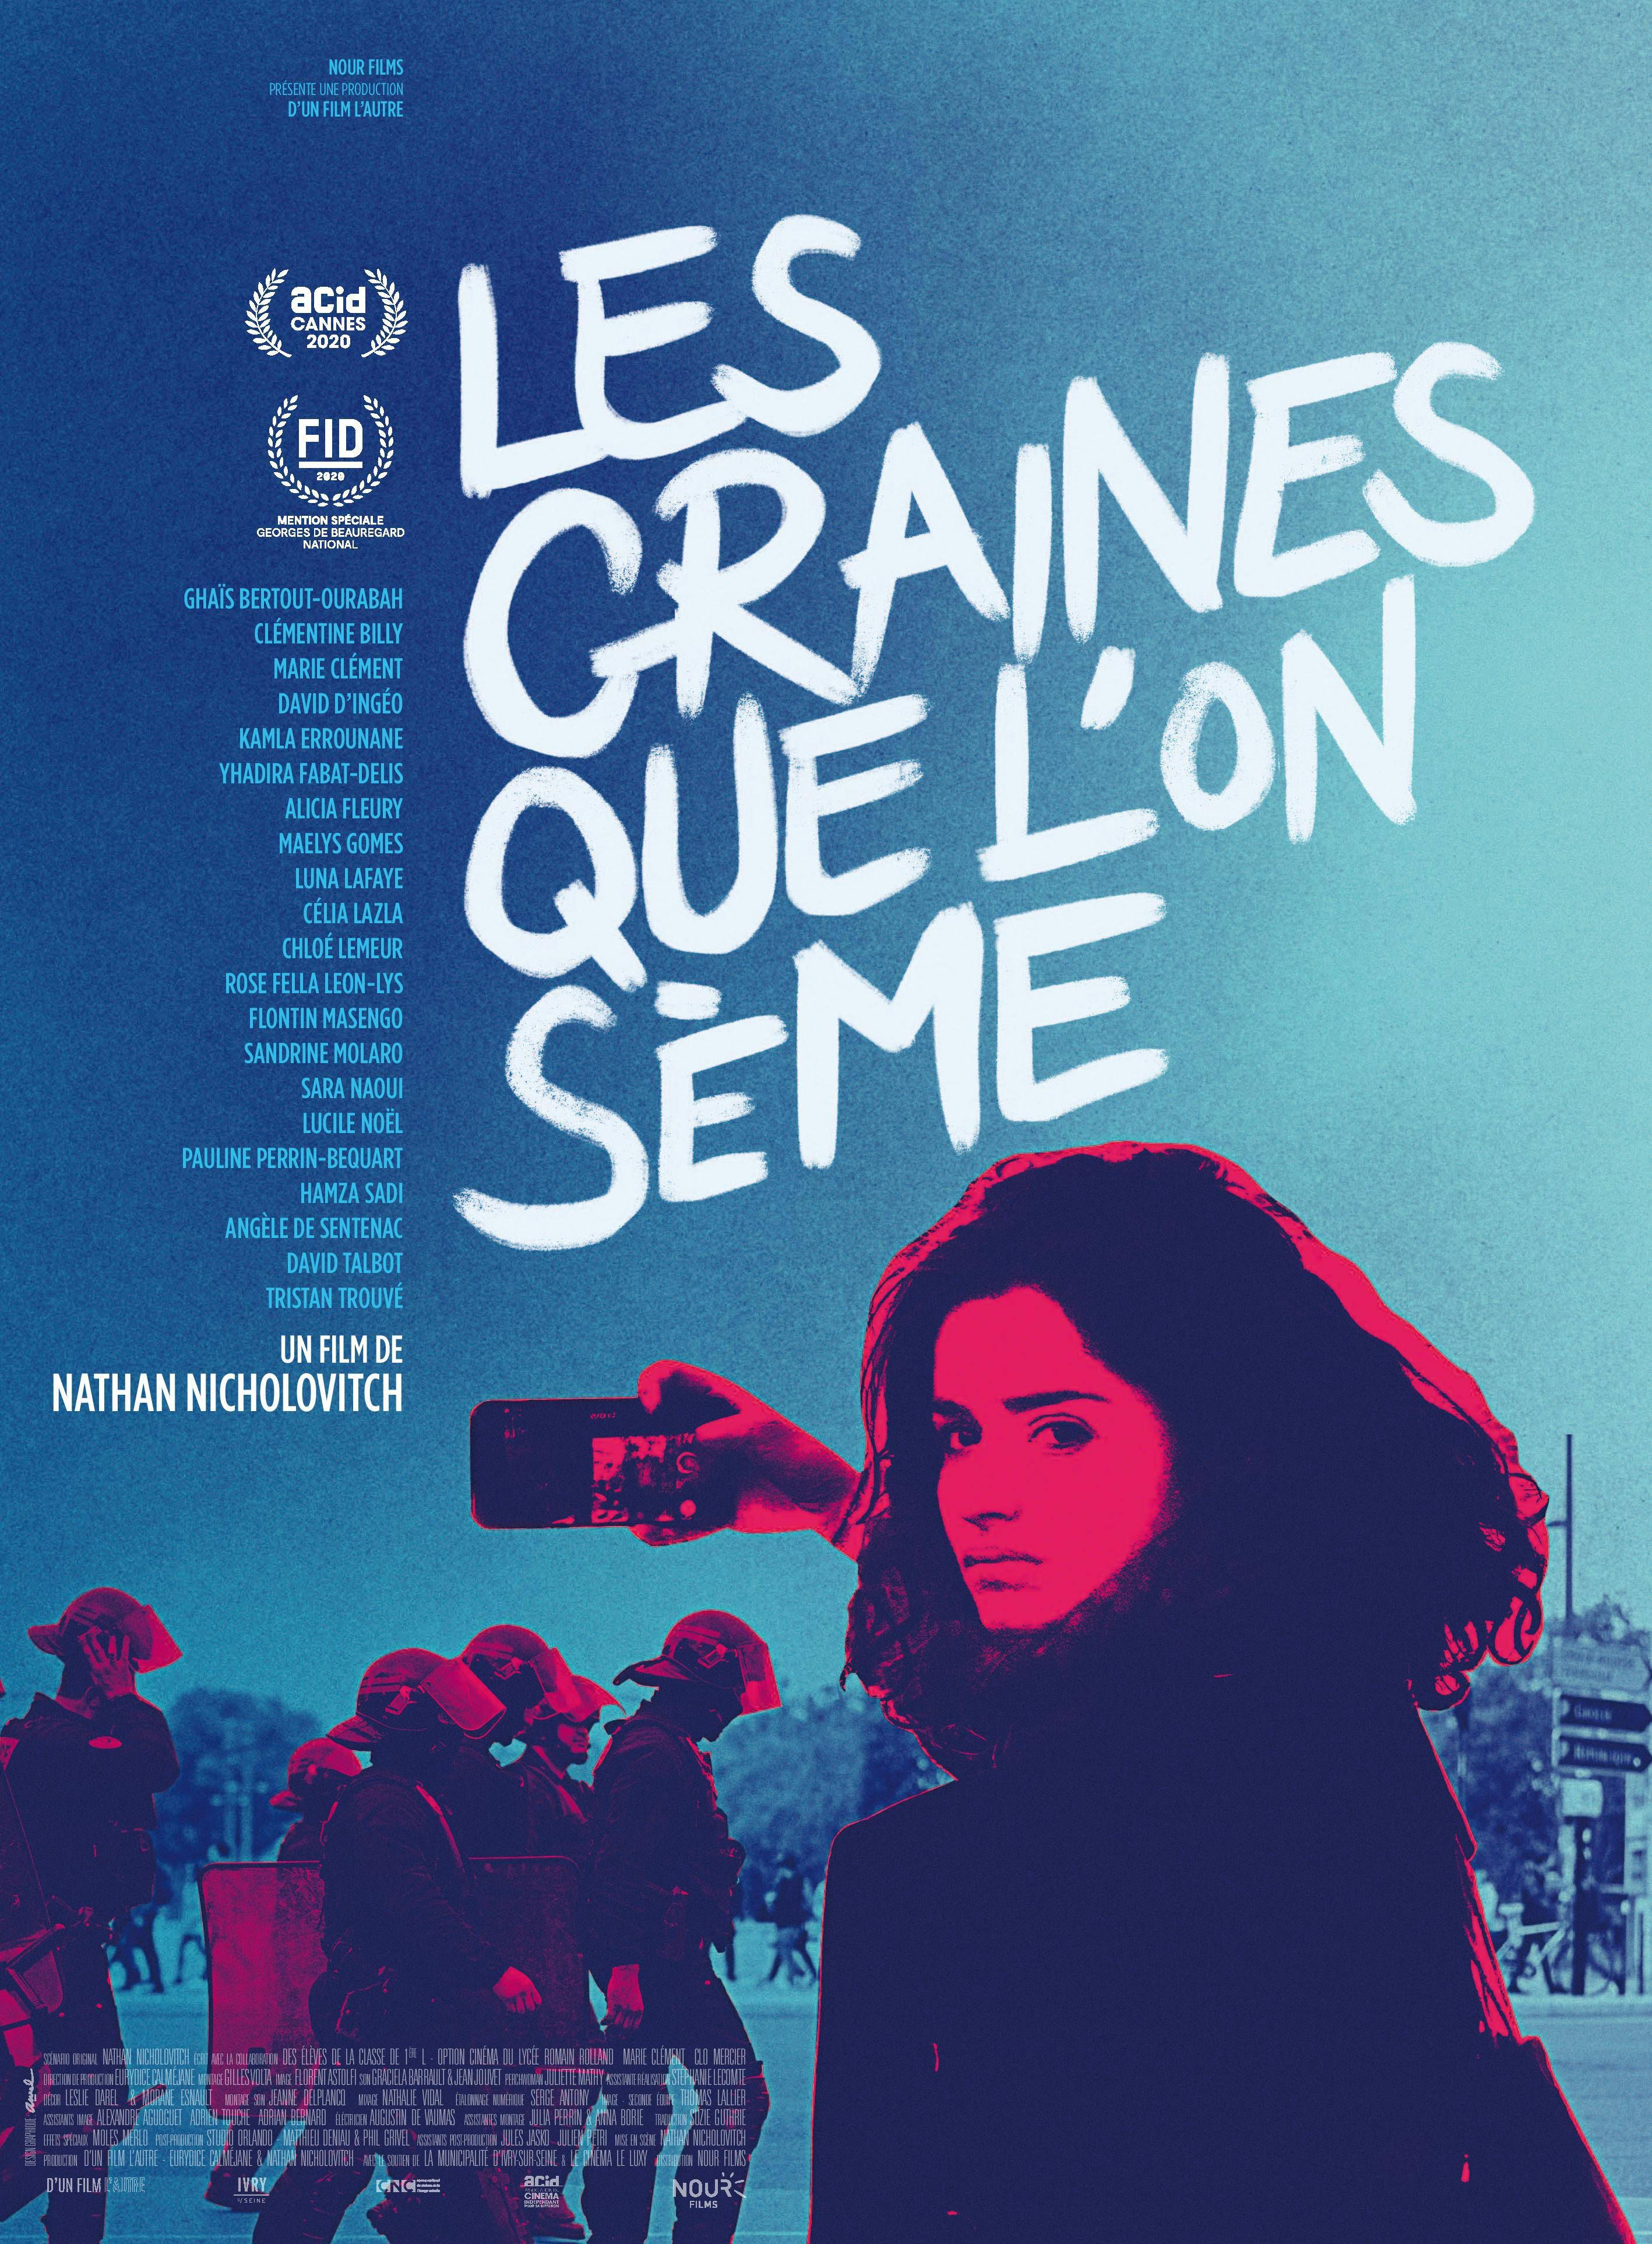 Voir Film Les Graines que l'on sème - Documentaire (2021) streaming VF gratuit complet